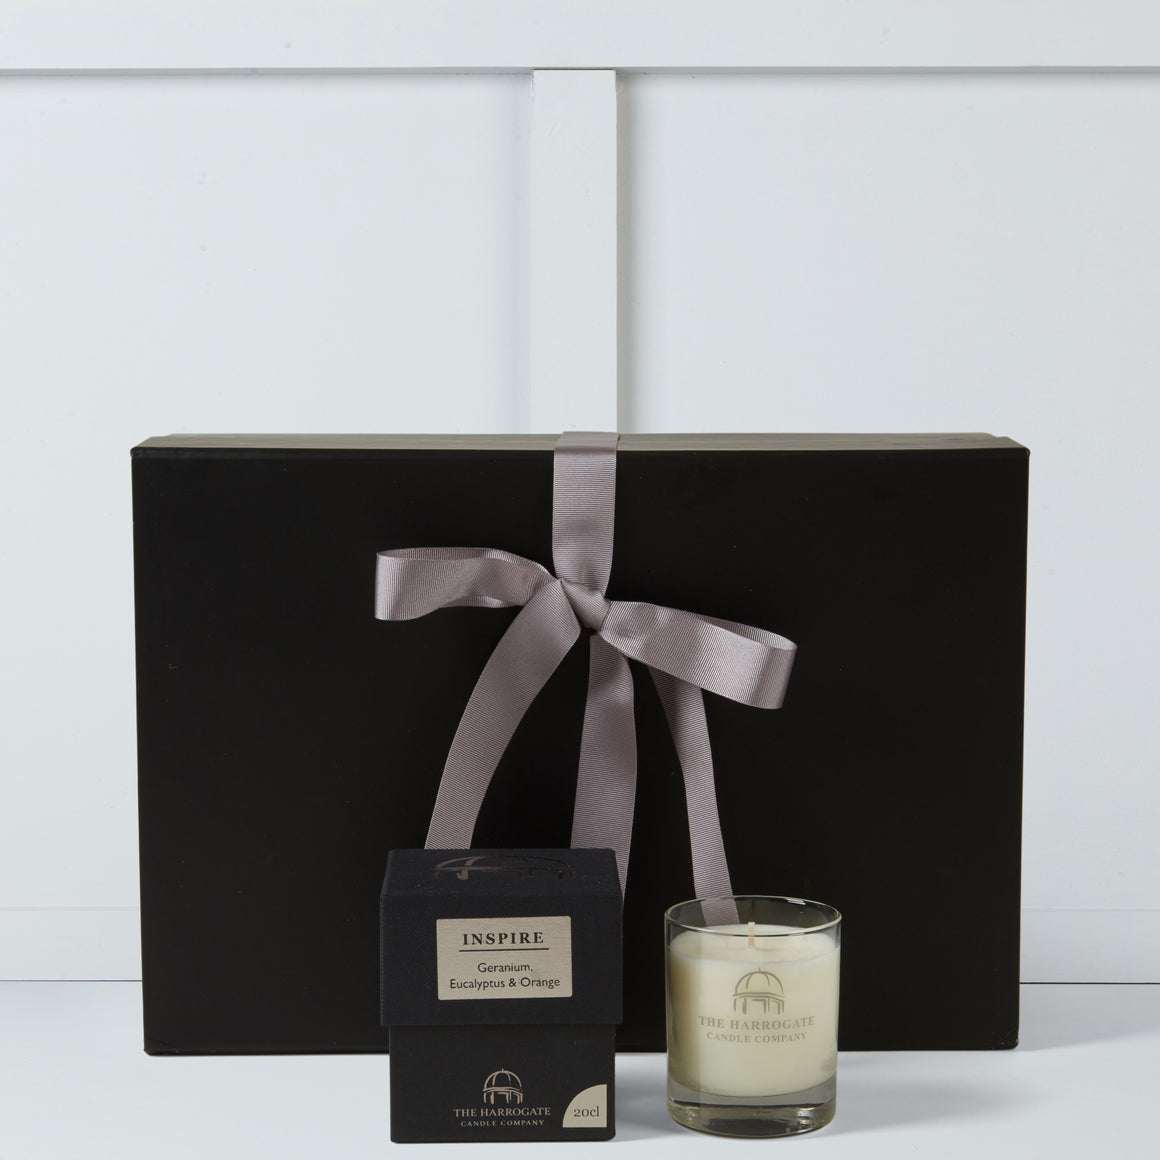 The Harrogate Candle